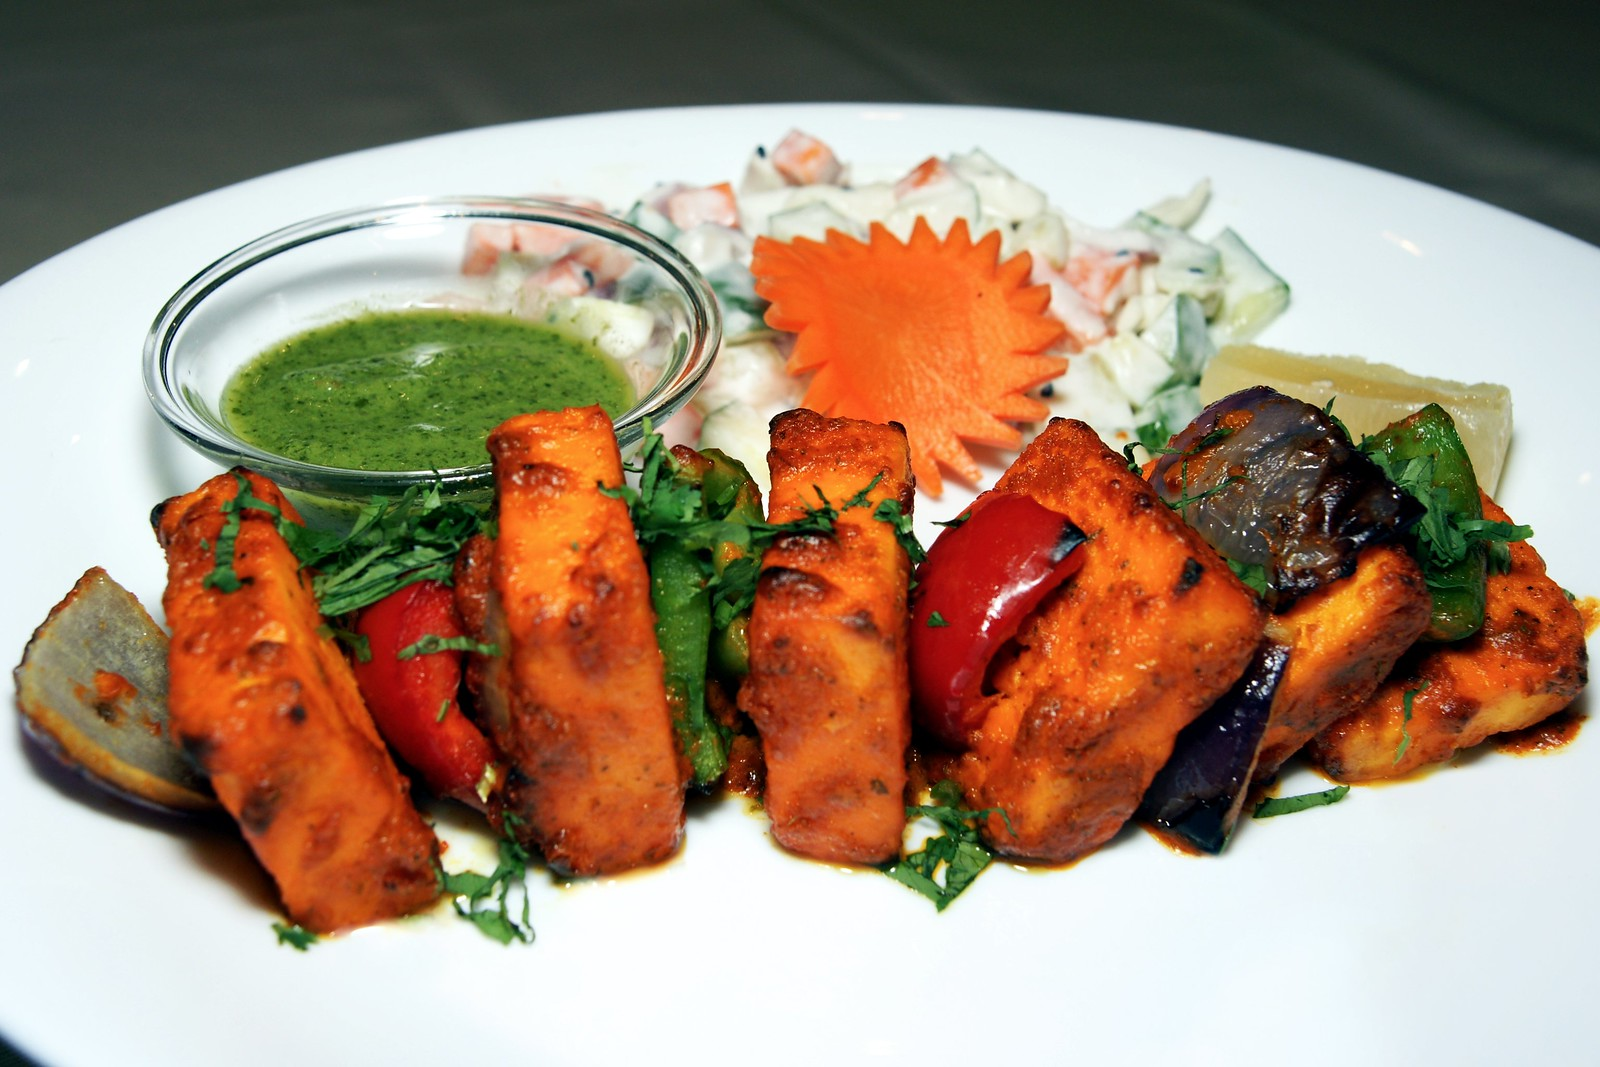 Indian Restaurants: Paneer tila 2